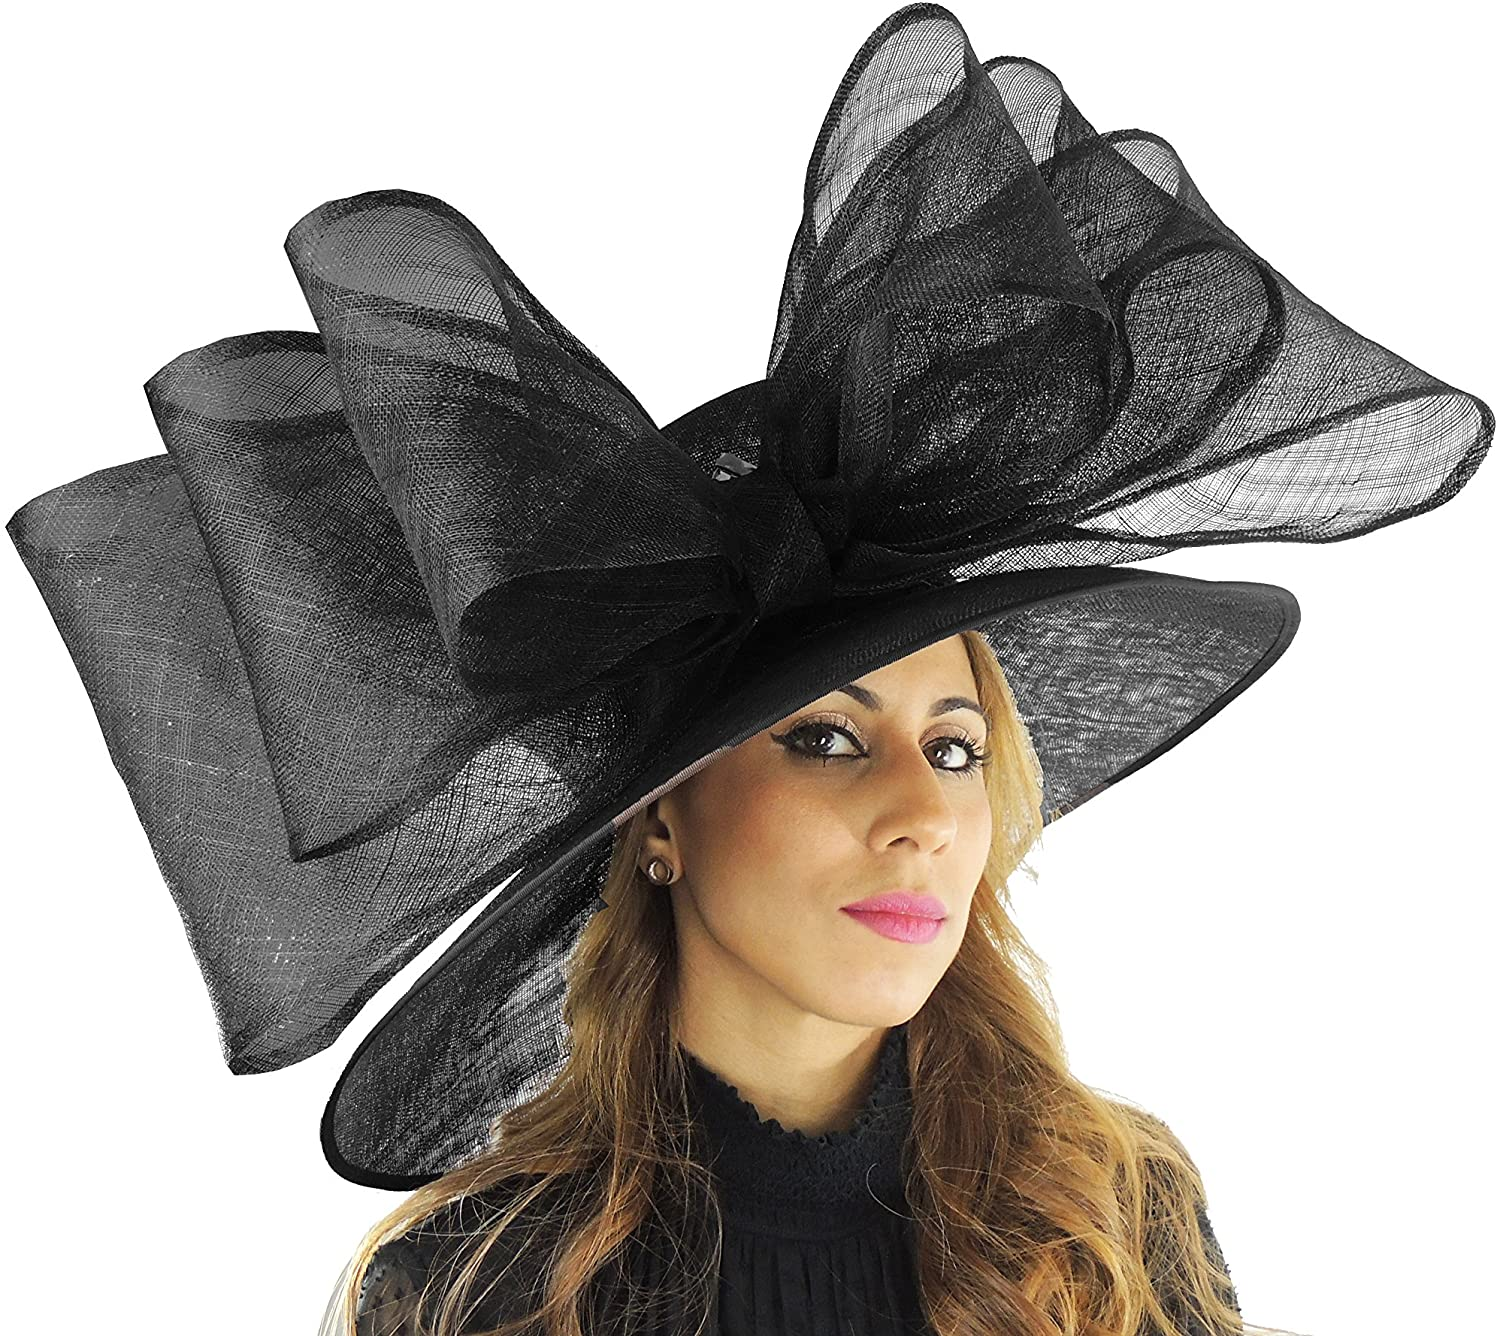 Hats By Cressida Large Kentucky Derby Hat in Black